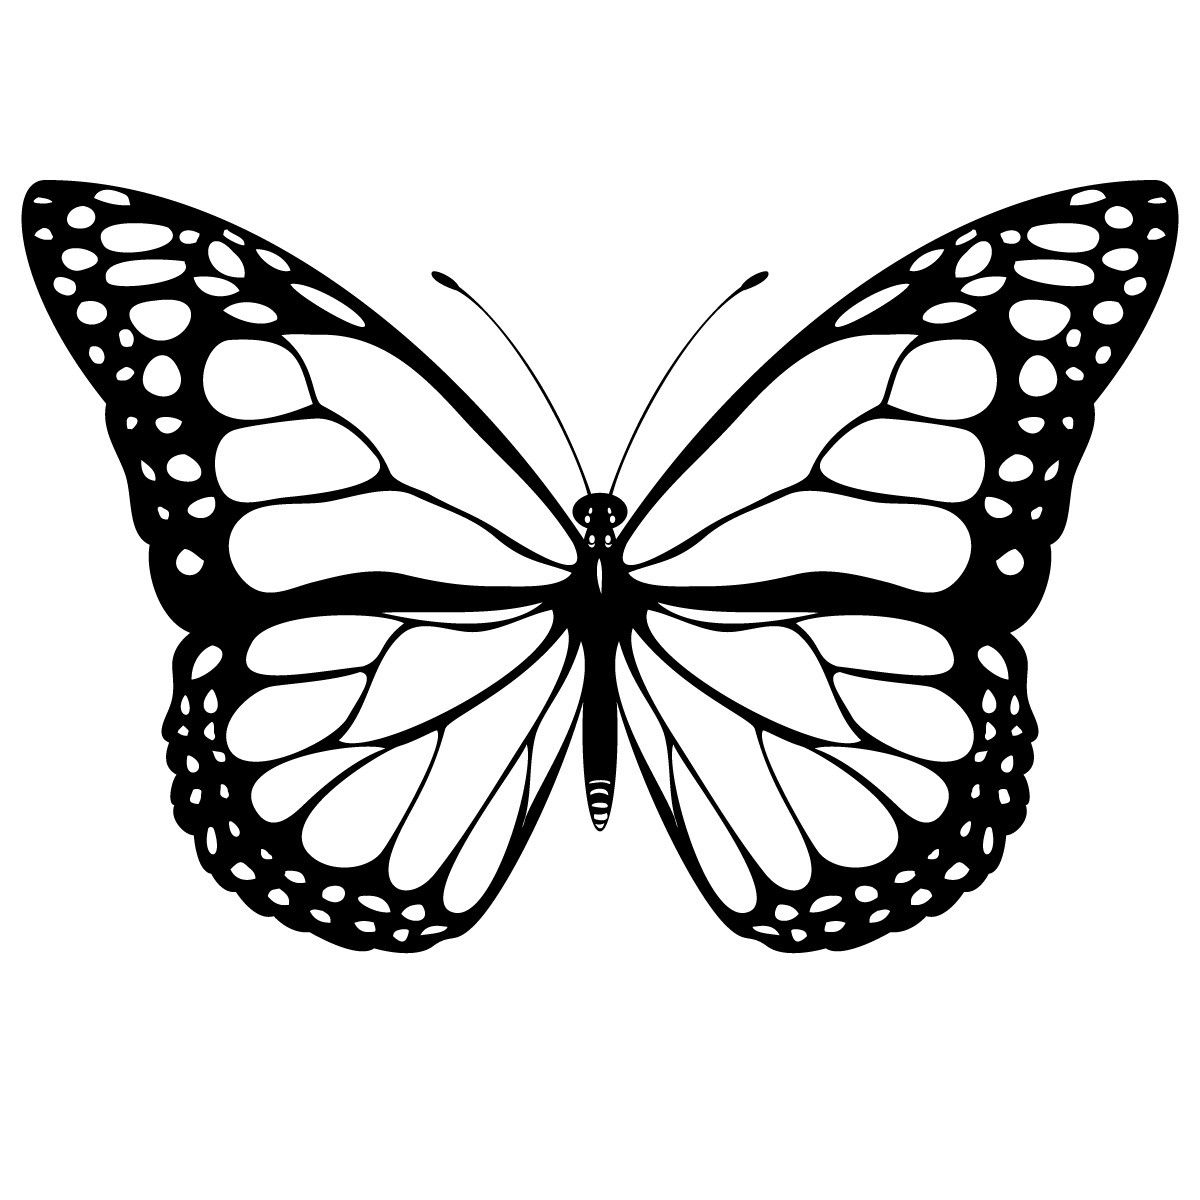 Free Printable butterfly Coloring Pages for Kids to Print Of Detailed Coloring Pages for Adults Collection